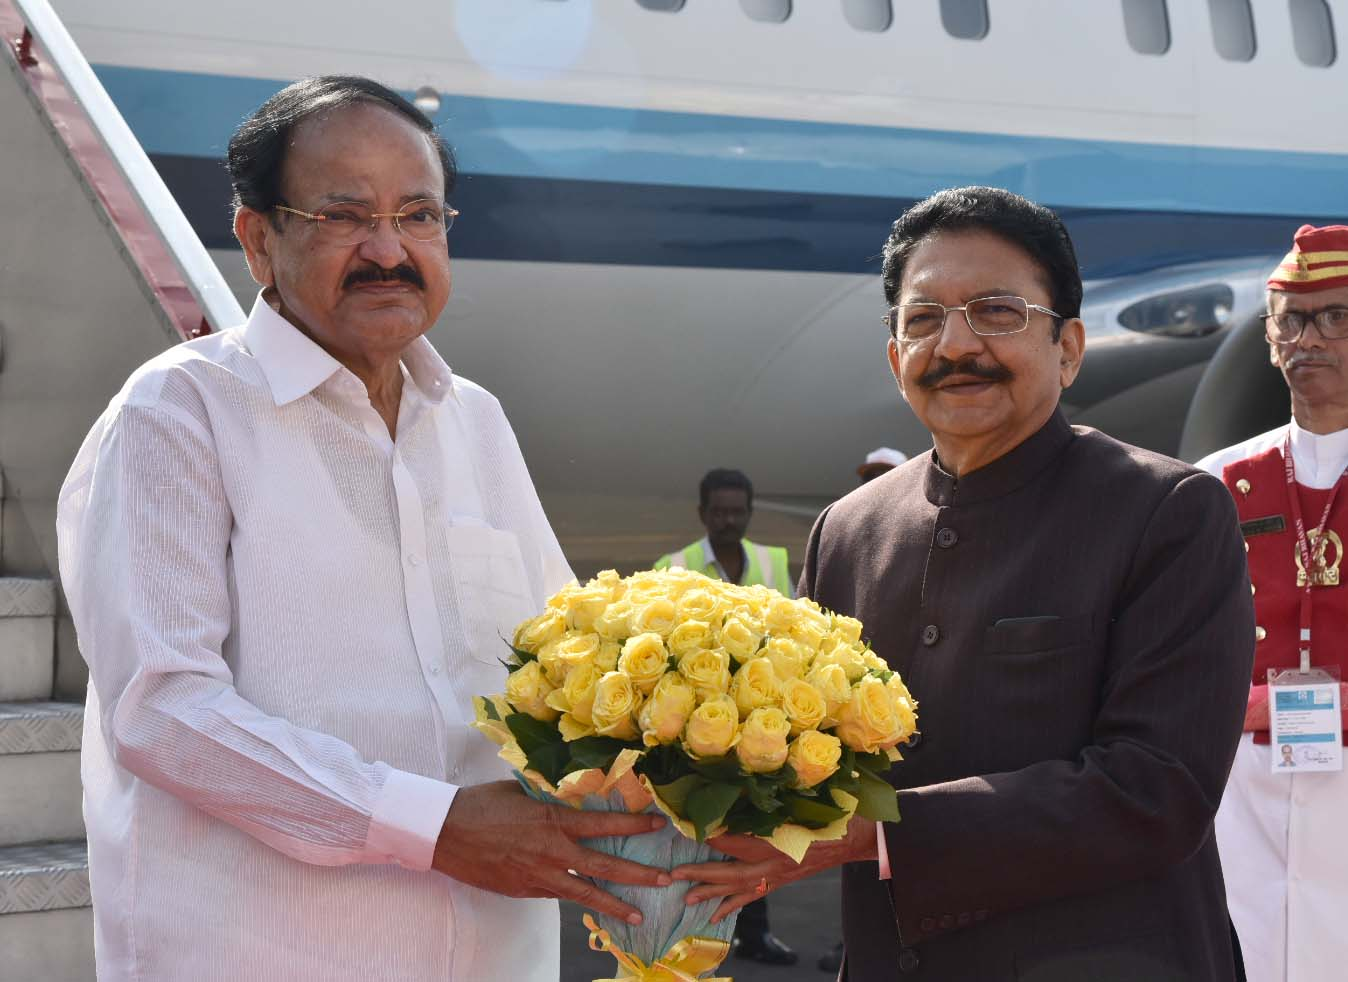 The Vice President, Shri M. Venkaiah Naidu being received by the Governor of Maharashtra, Shri C. Vidyasagar Rao and others, on his arrival, in Mumbai on March 26, 2019.